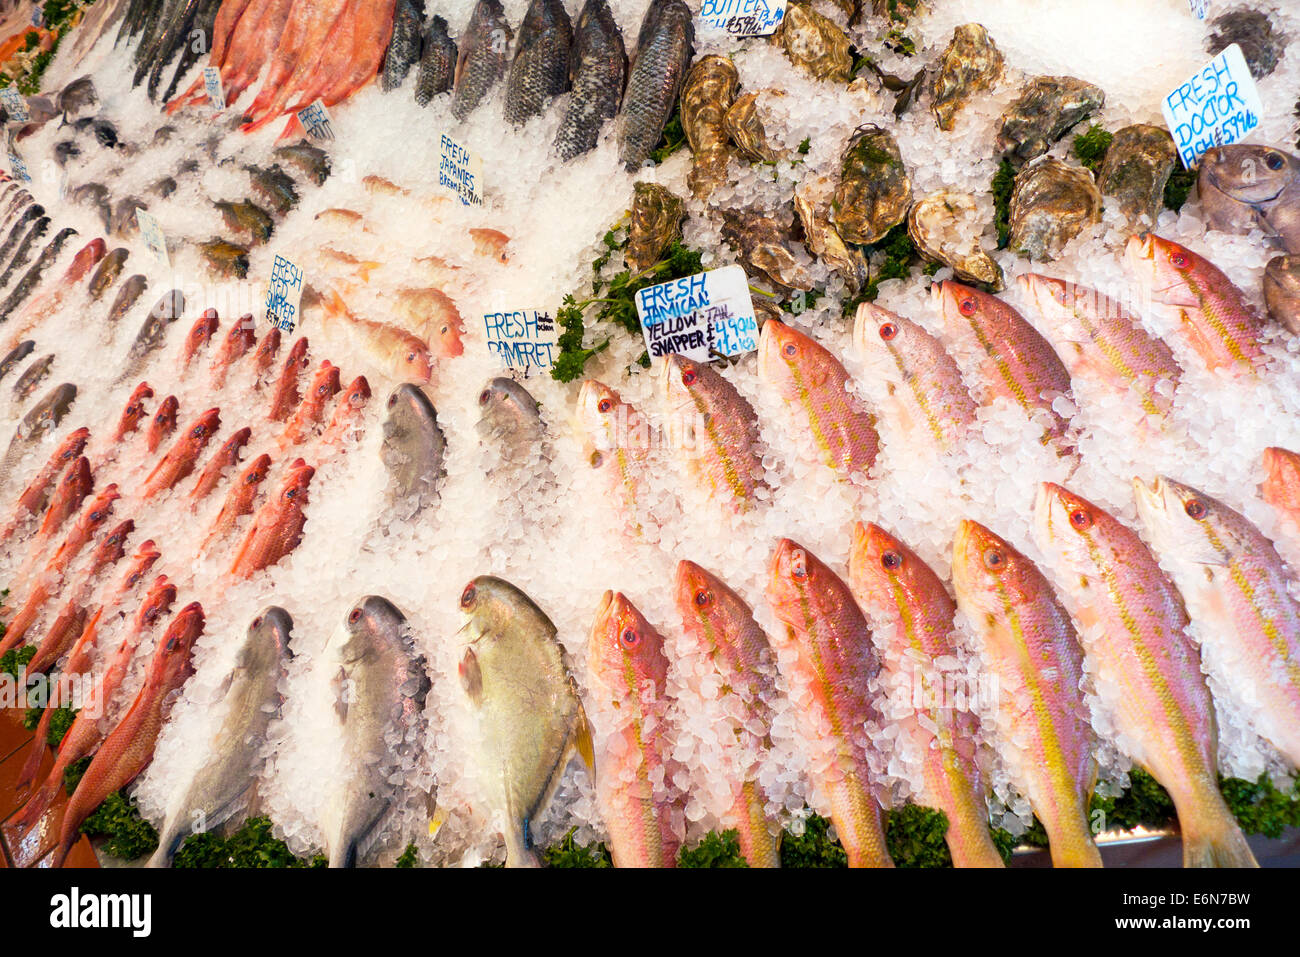 Variety Of Fresh Fish On Ice From Around The World For Sale In N A